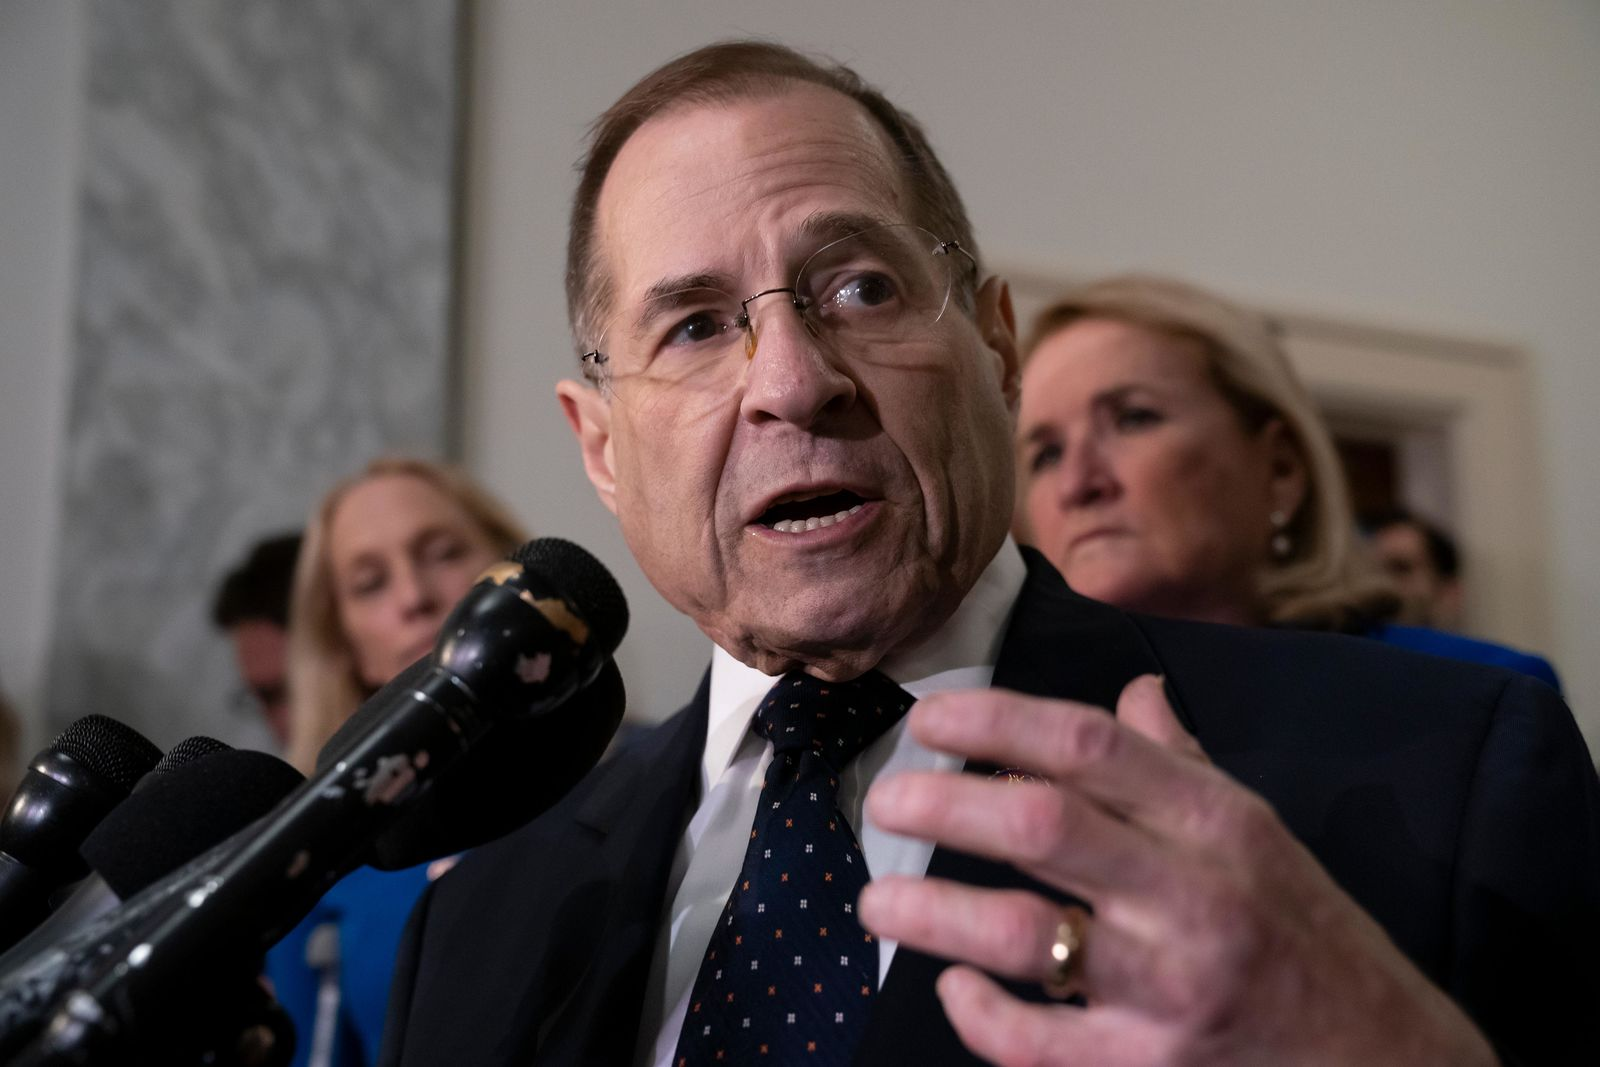 House Judiciary Committee Chairman Jerrold Nadler, D-N.Y., talks to reporters after leading his Democratic majority to vote to hold Attorney General William Barr in contempt of Congress, escalating the legal battle with the Trump administration over access to special counsel Robert Mueller's report, on Capitol Hill in Washington, Wednesday, May 8, 2019. The committee voted 24-16 to hold Barr in contempt after the Justice Department rejected House Democrats' demands for the full Mueller report and the underlying evidence. (AP Photo/J. Scott Applewhite)